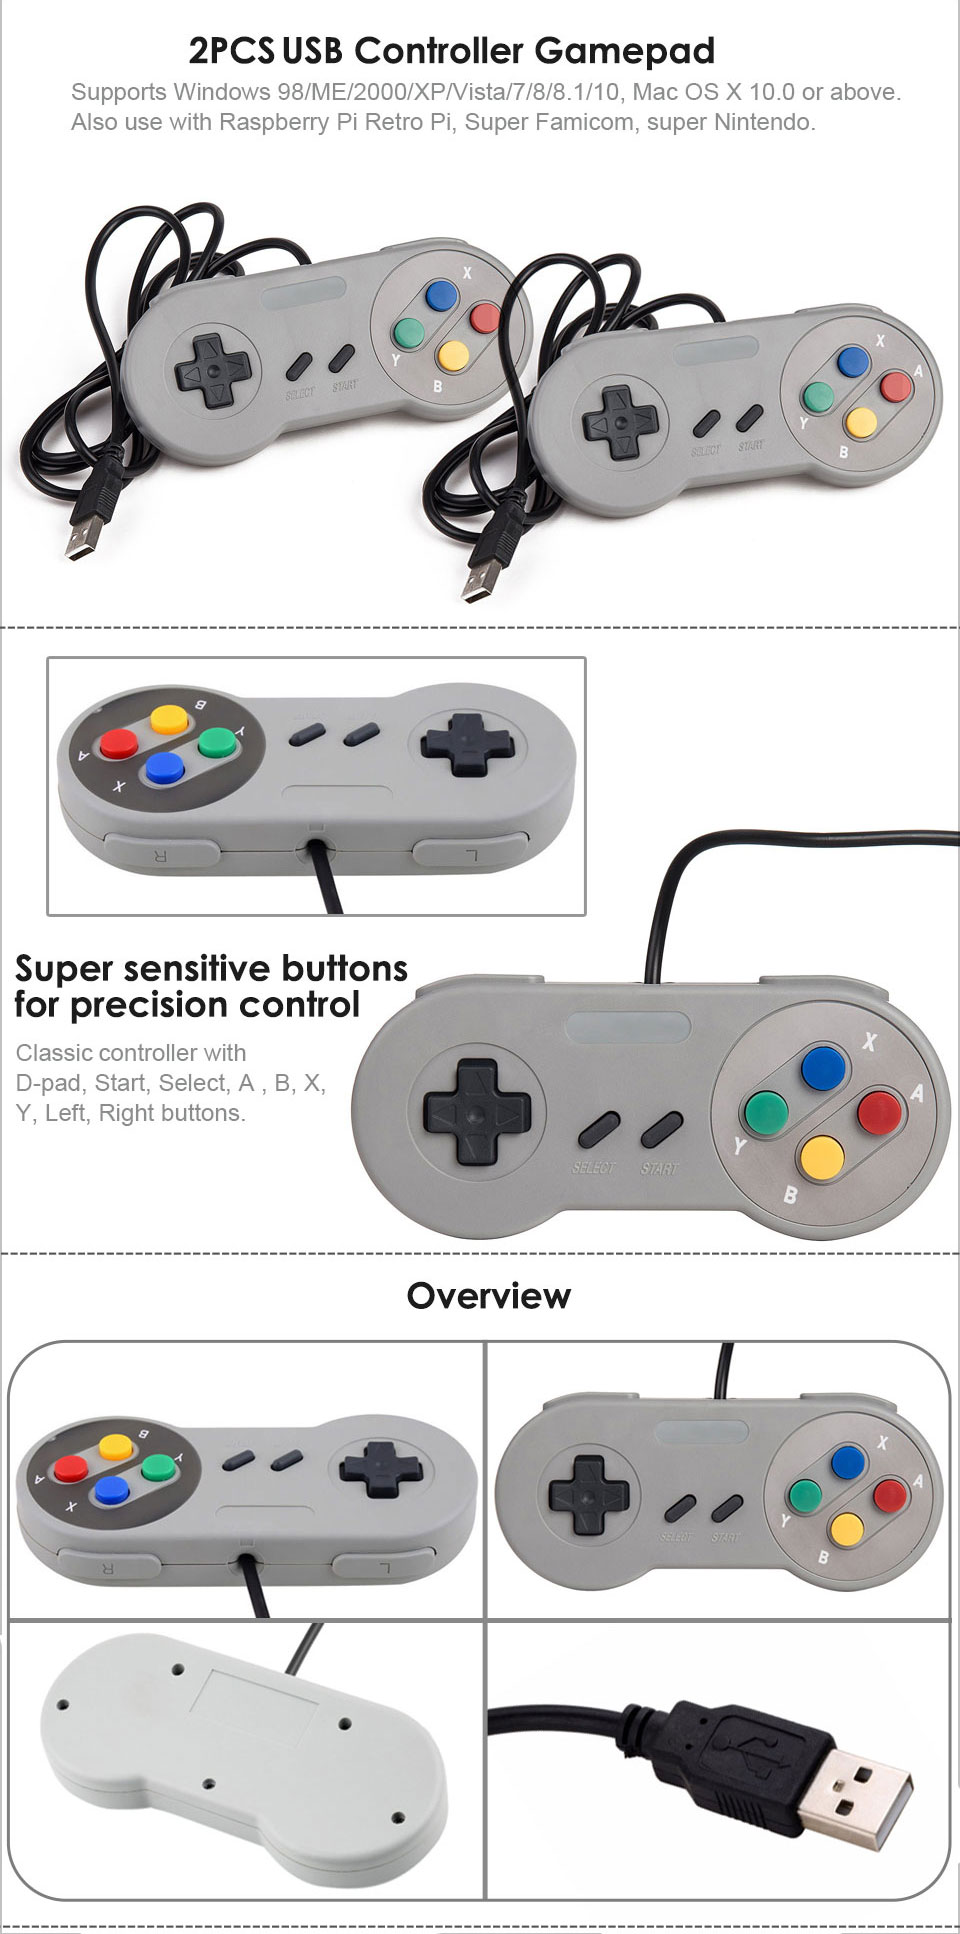 OS X - Best Gamepad for Mac? | MacRumors Forums